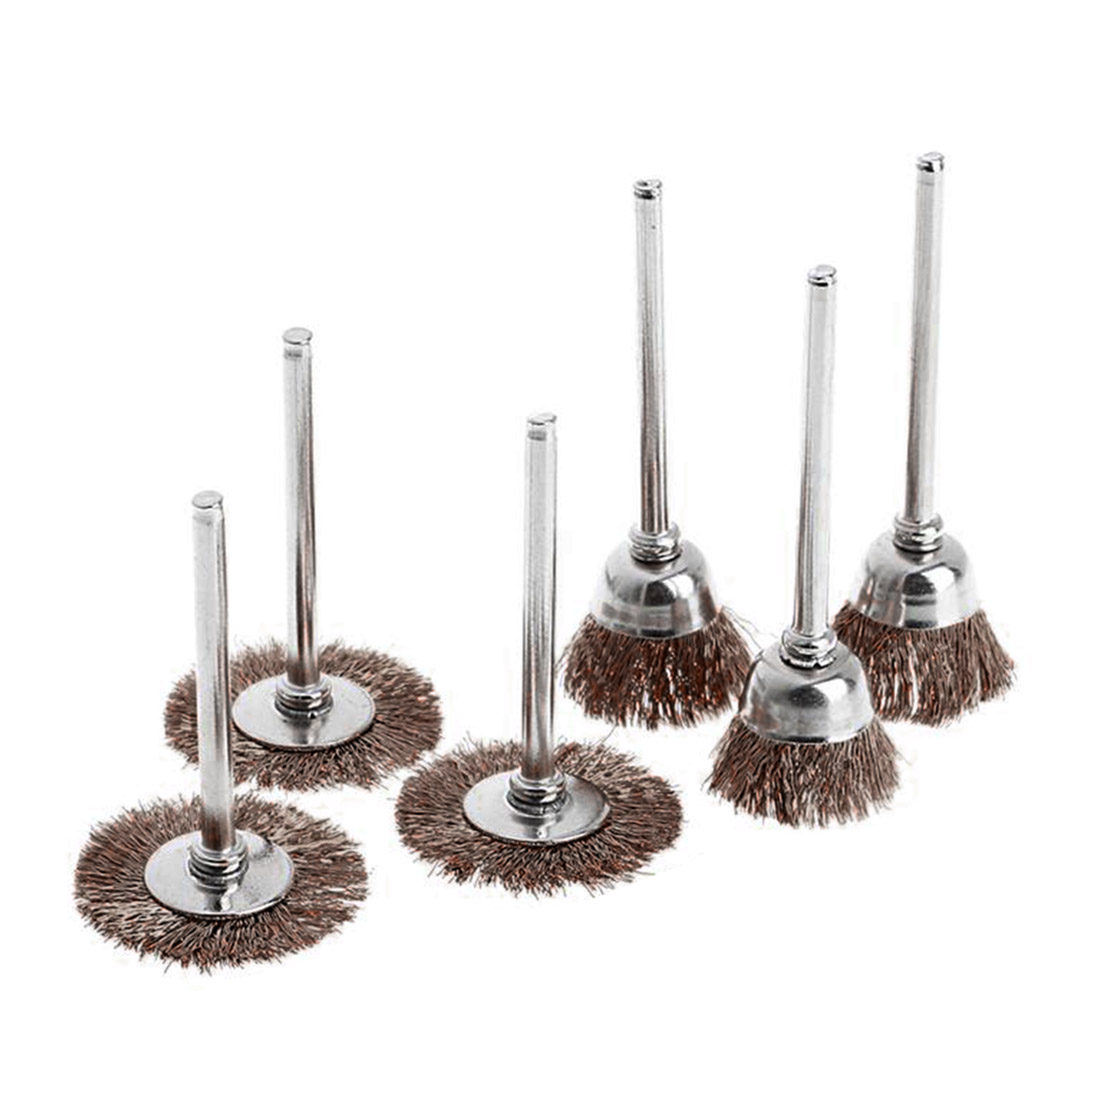 Embossed Root Carving Polished Flower Head Mahogany Carving Surface Polished Waxing Wenwan  Brass Brush Wire Wheel Brushes